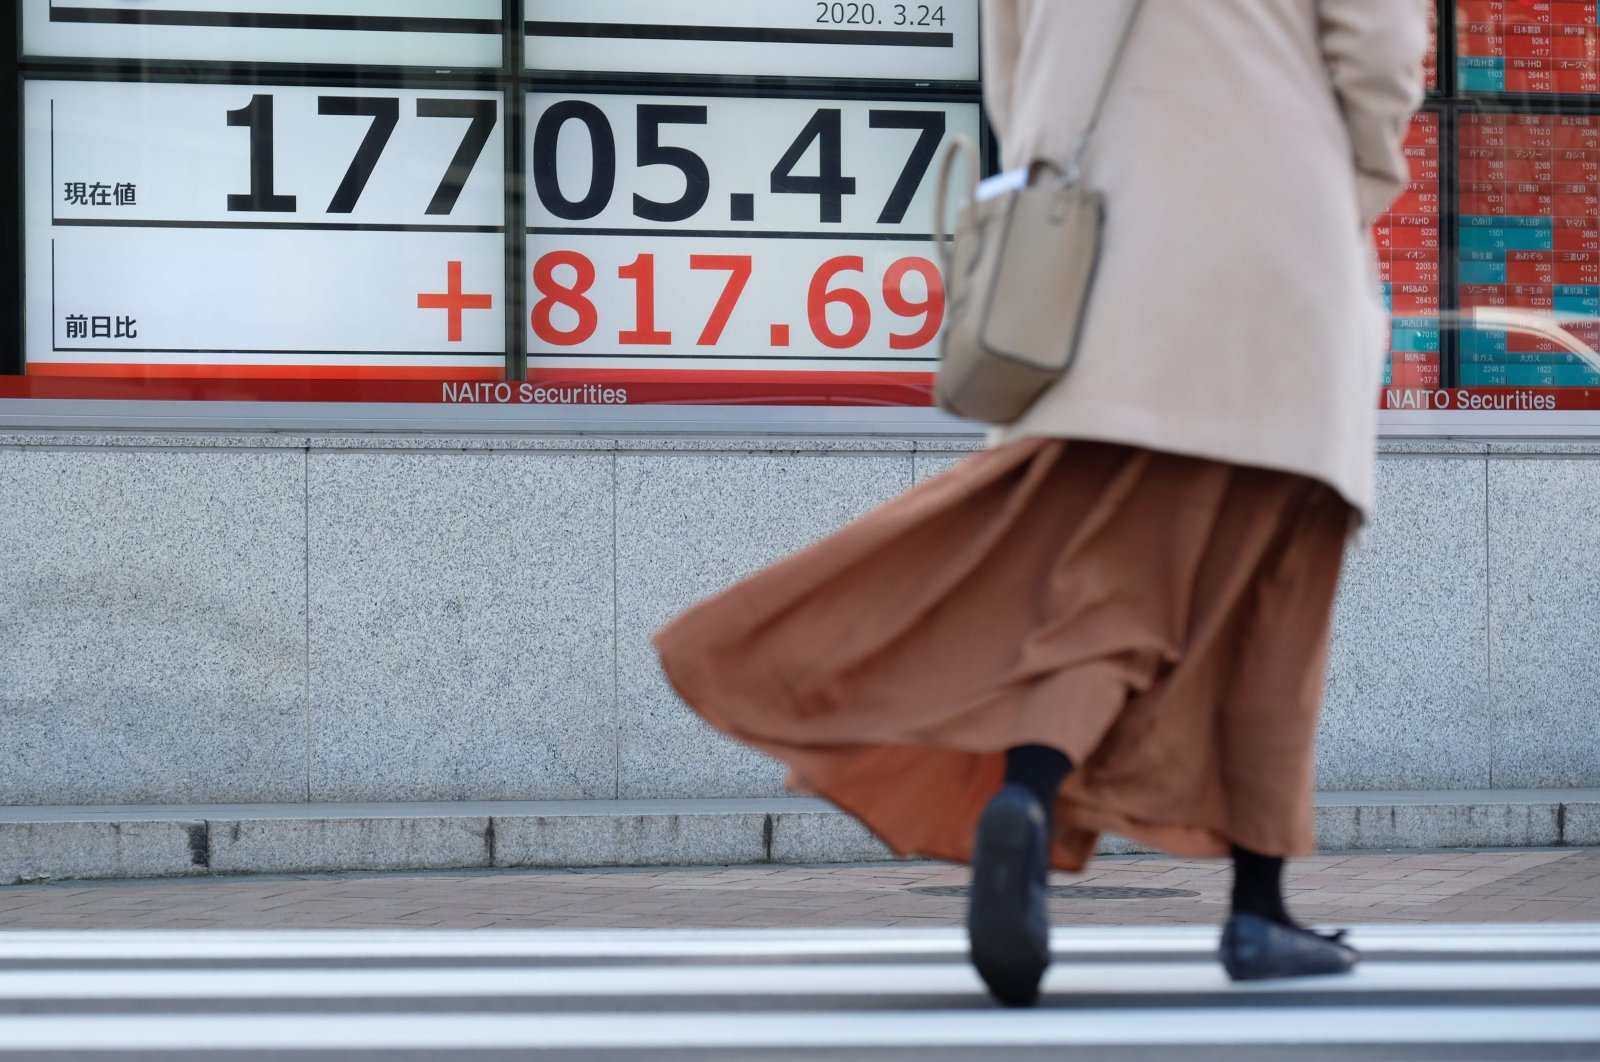 A pedestrian walks past a quotation board displaying the share price numbers during morning trading on the Tokyo Stock Exchange in Tokyo, March 24, 2020. (AFP Photo)